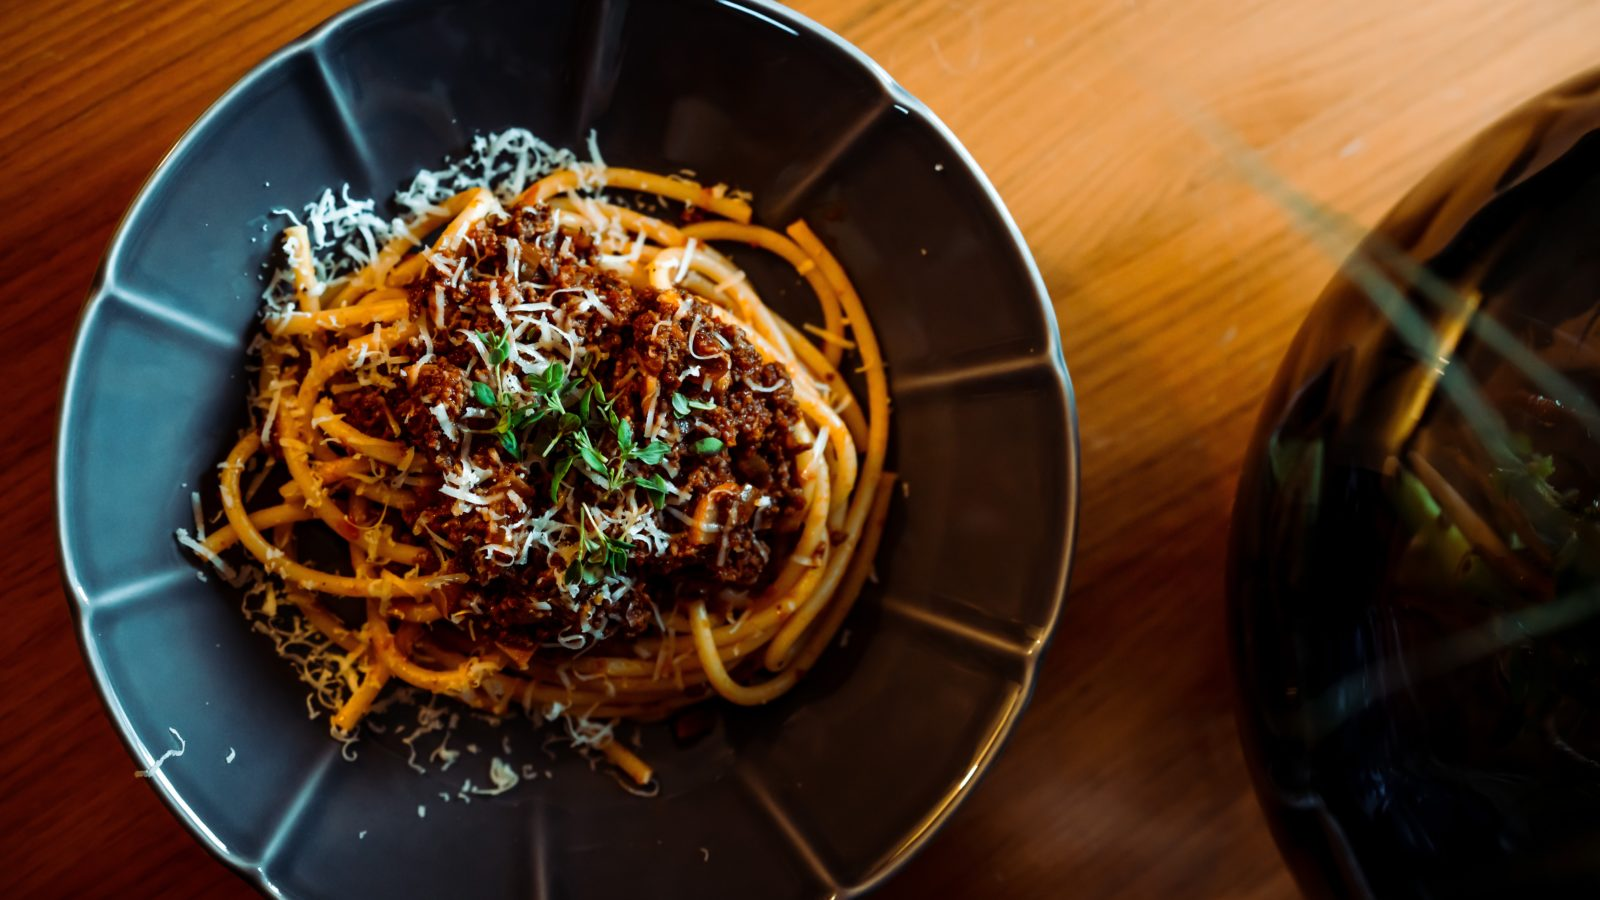 How to perfect spaghetti bolognese at home, according to 6 Italian chefs in Bangkok